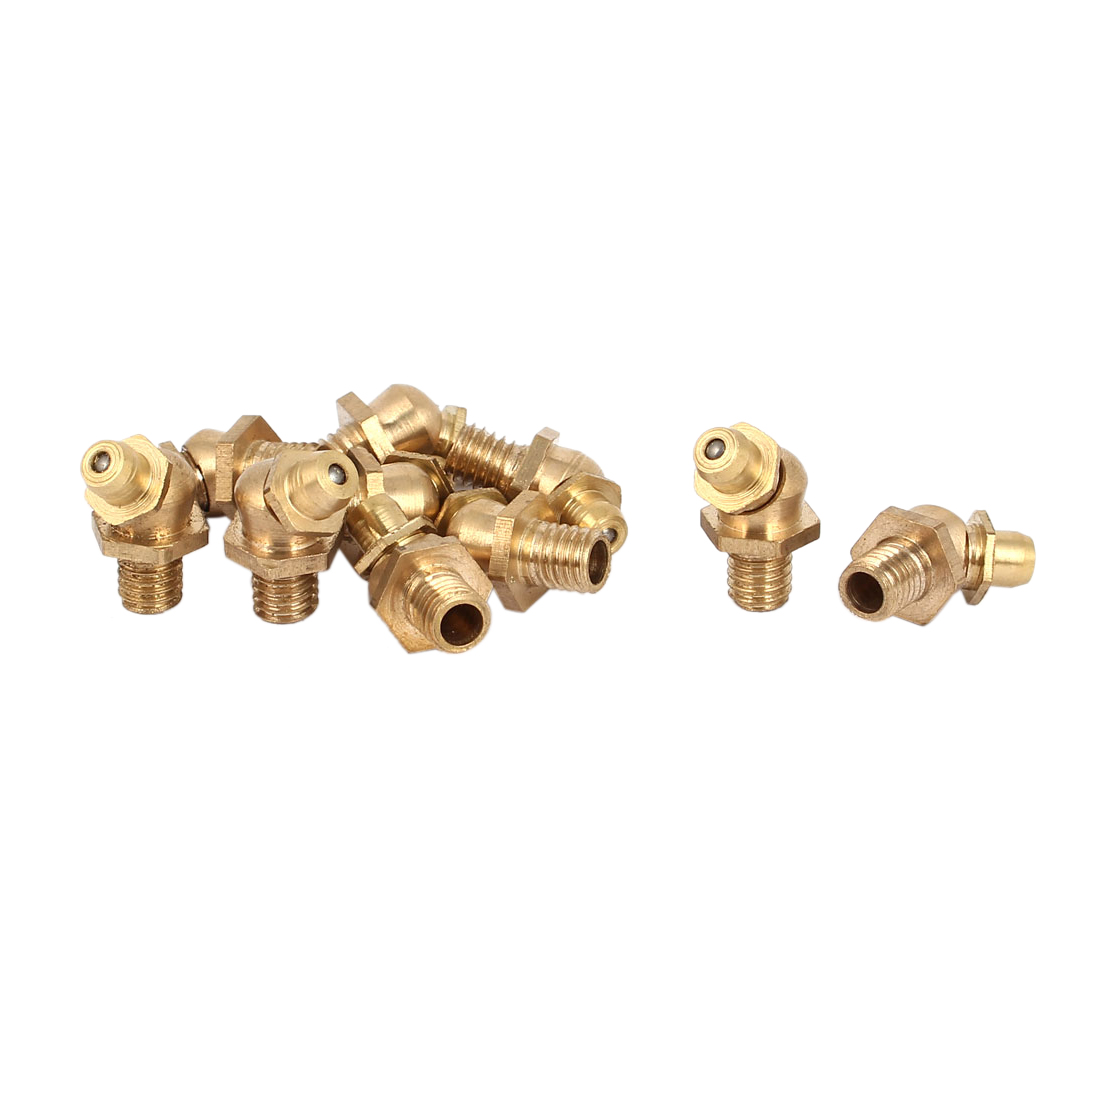 M6 Thread 1mm Pitch 45 Degree Angle Brass Grease Zerk Nipple Fittings 10 Pcs